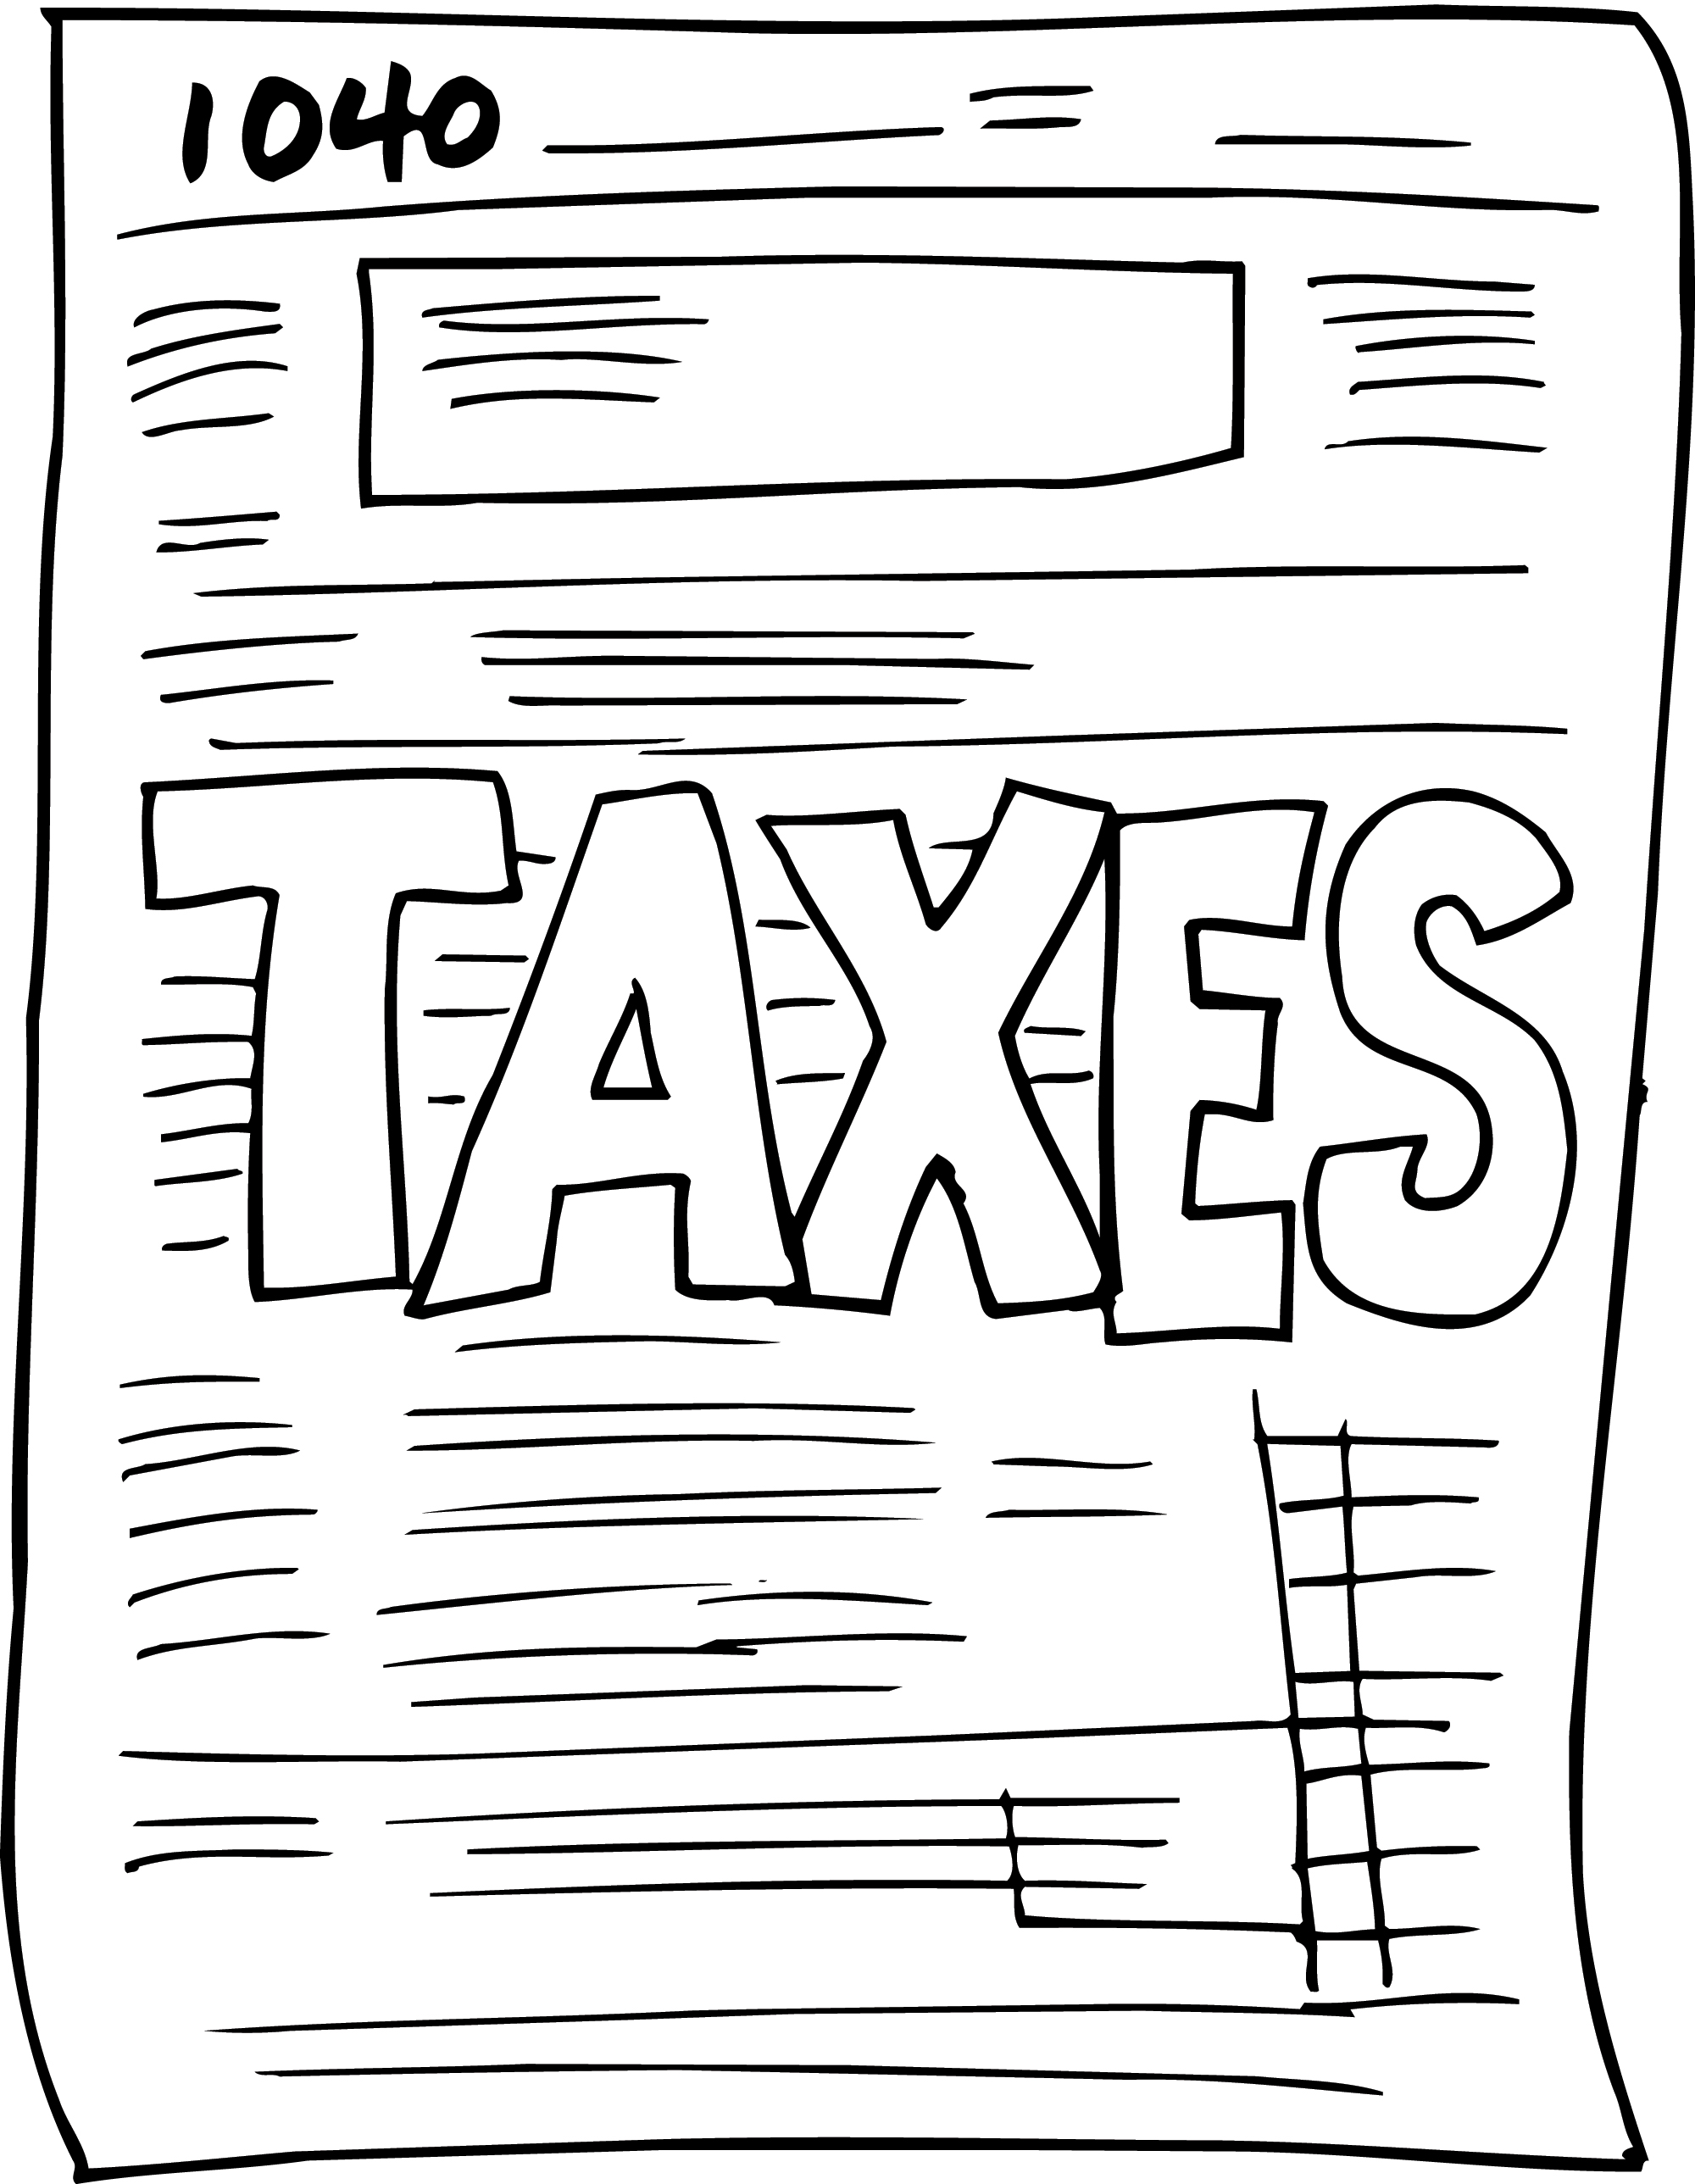 taxation essay Essay on tax: free examples of essays, research and term papers examples of tax essay topics, questions and thesis satatements.